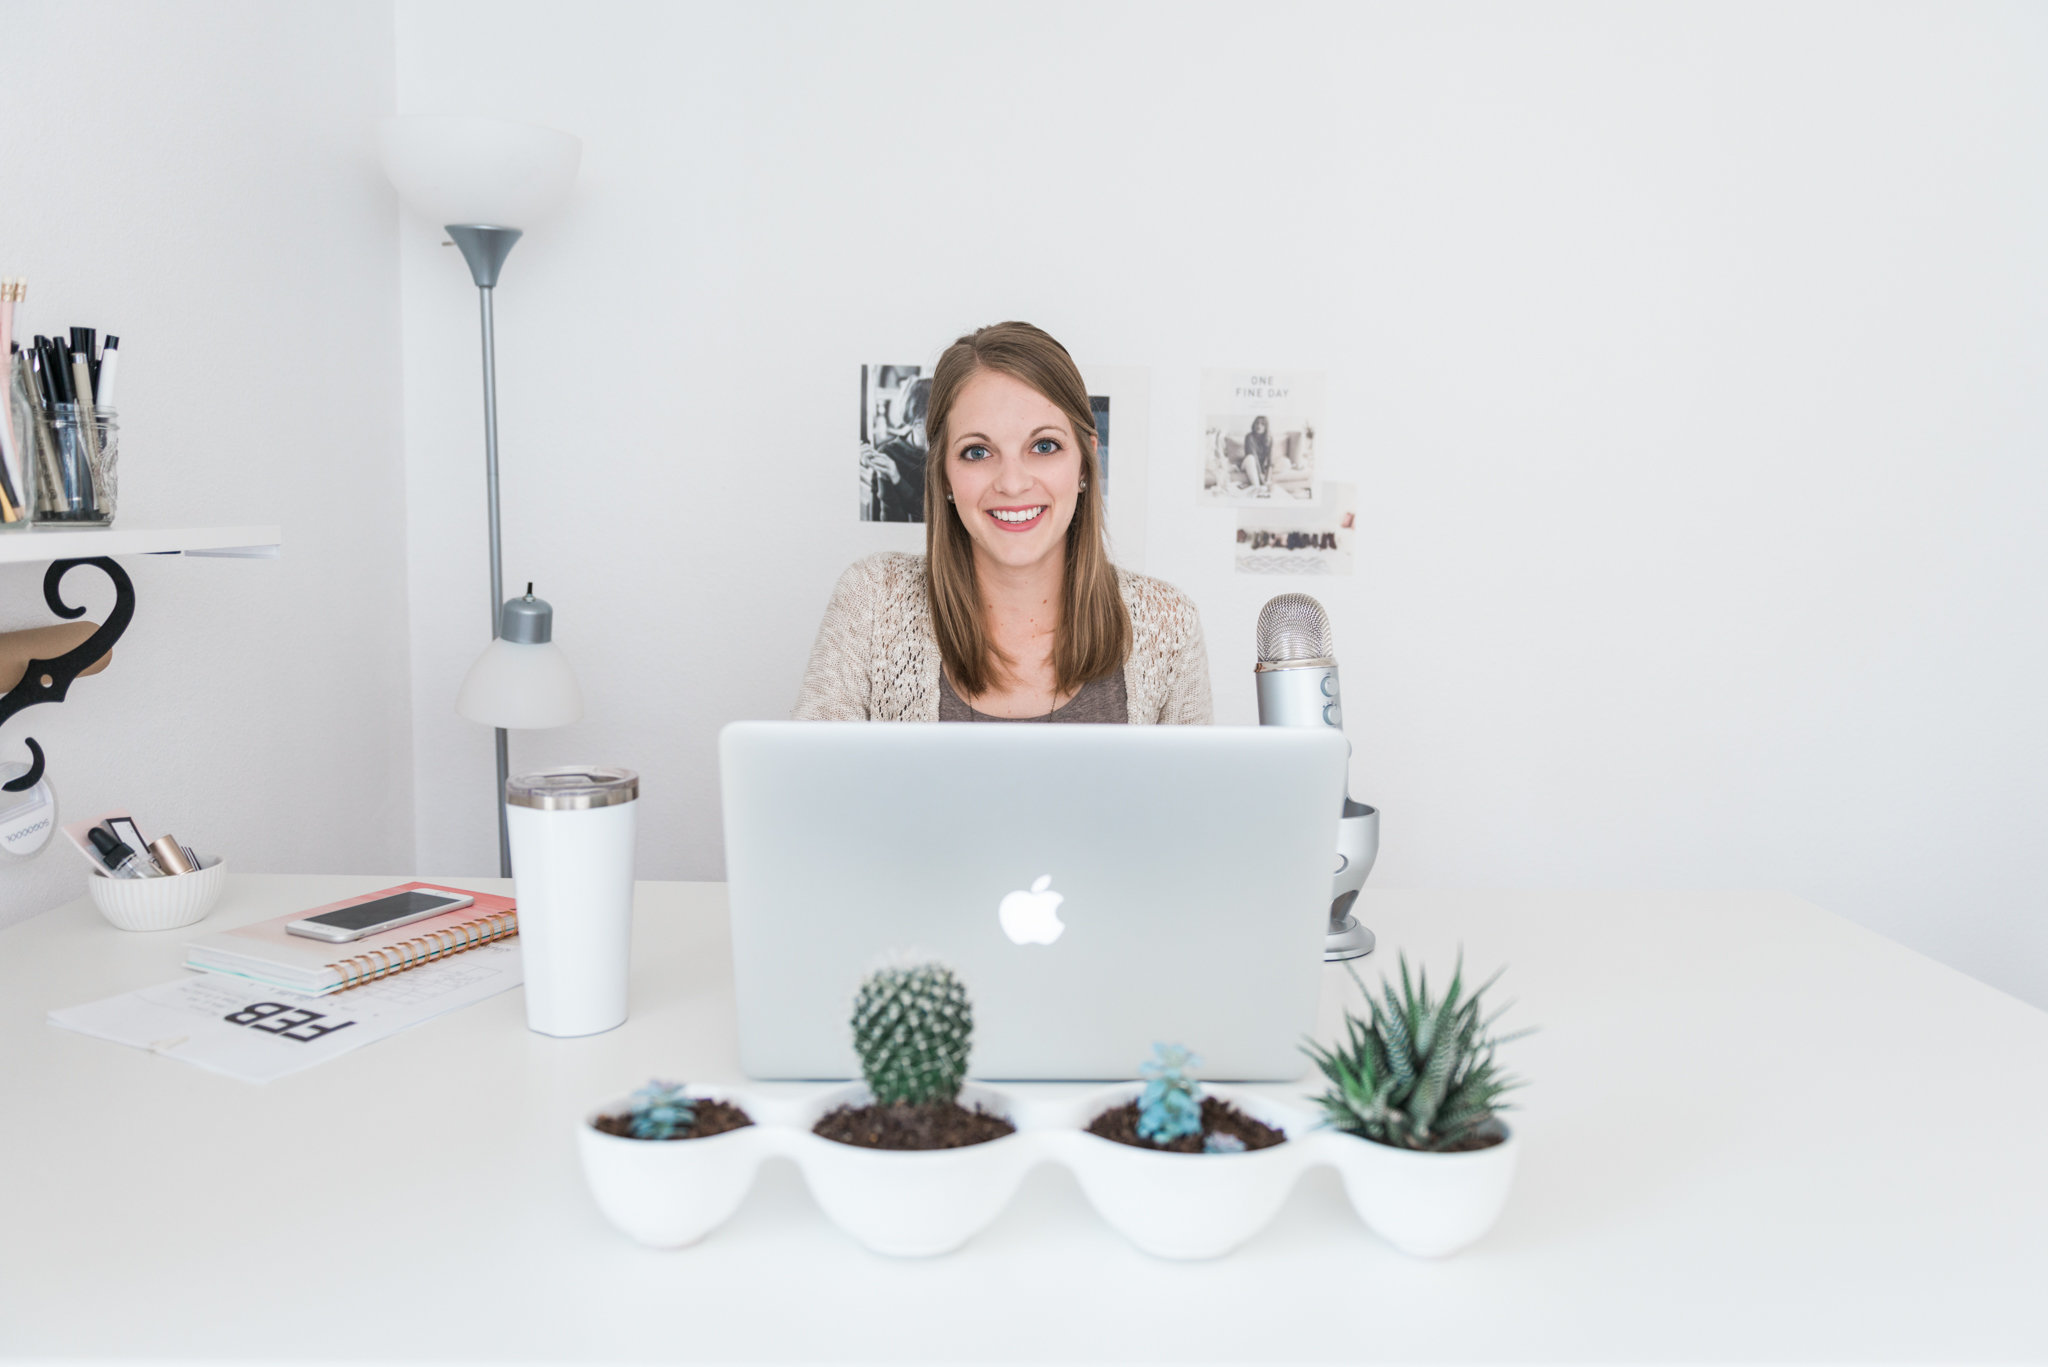 MaggieGentry interviews Devan Danielle about branding, following your gut, and how to stay motivated while owning a small business.